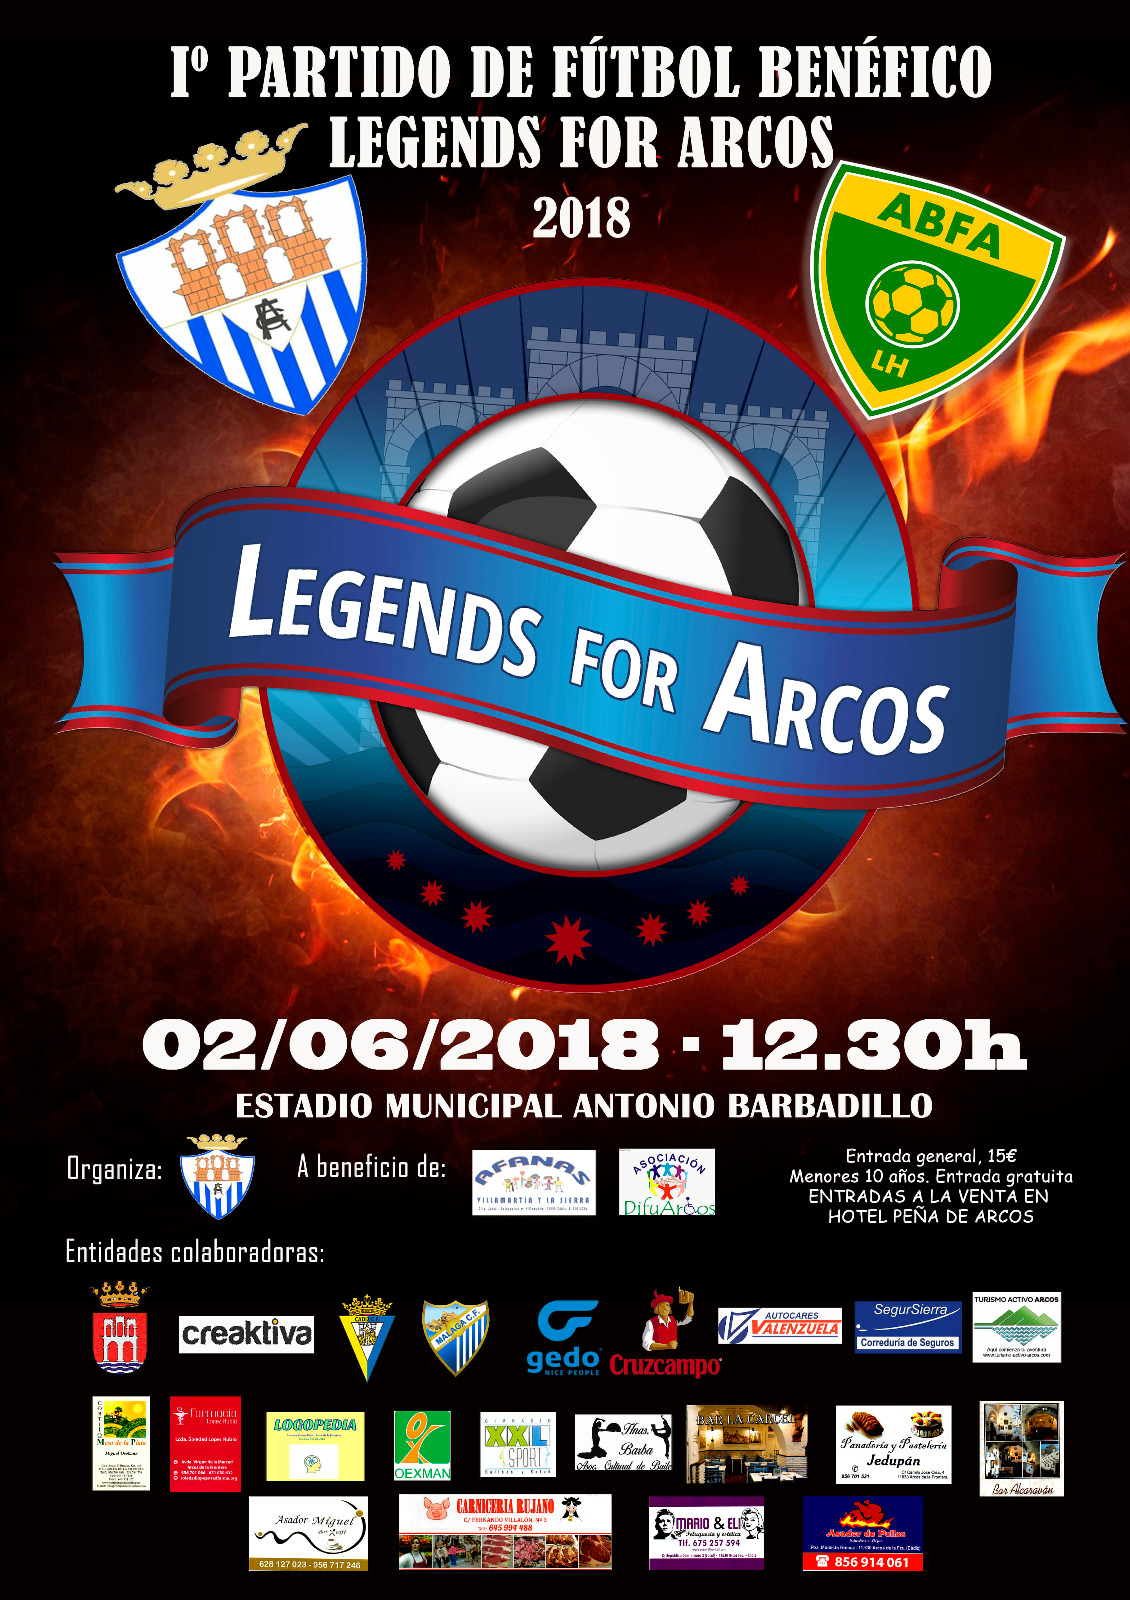 PARTIDO BENÉFICO LEGENDS FOR ARCOS 2018